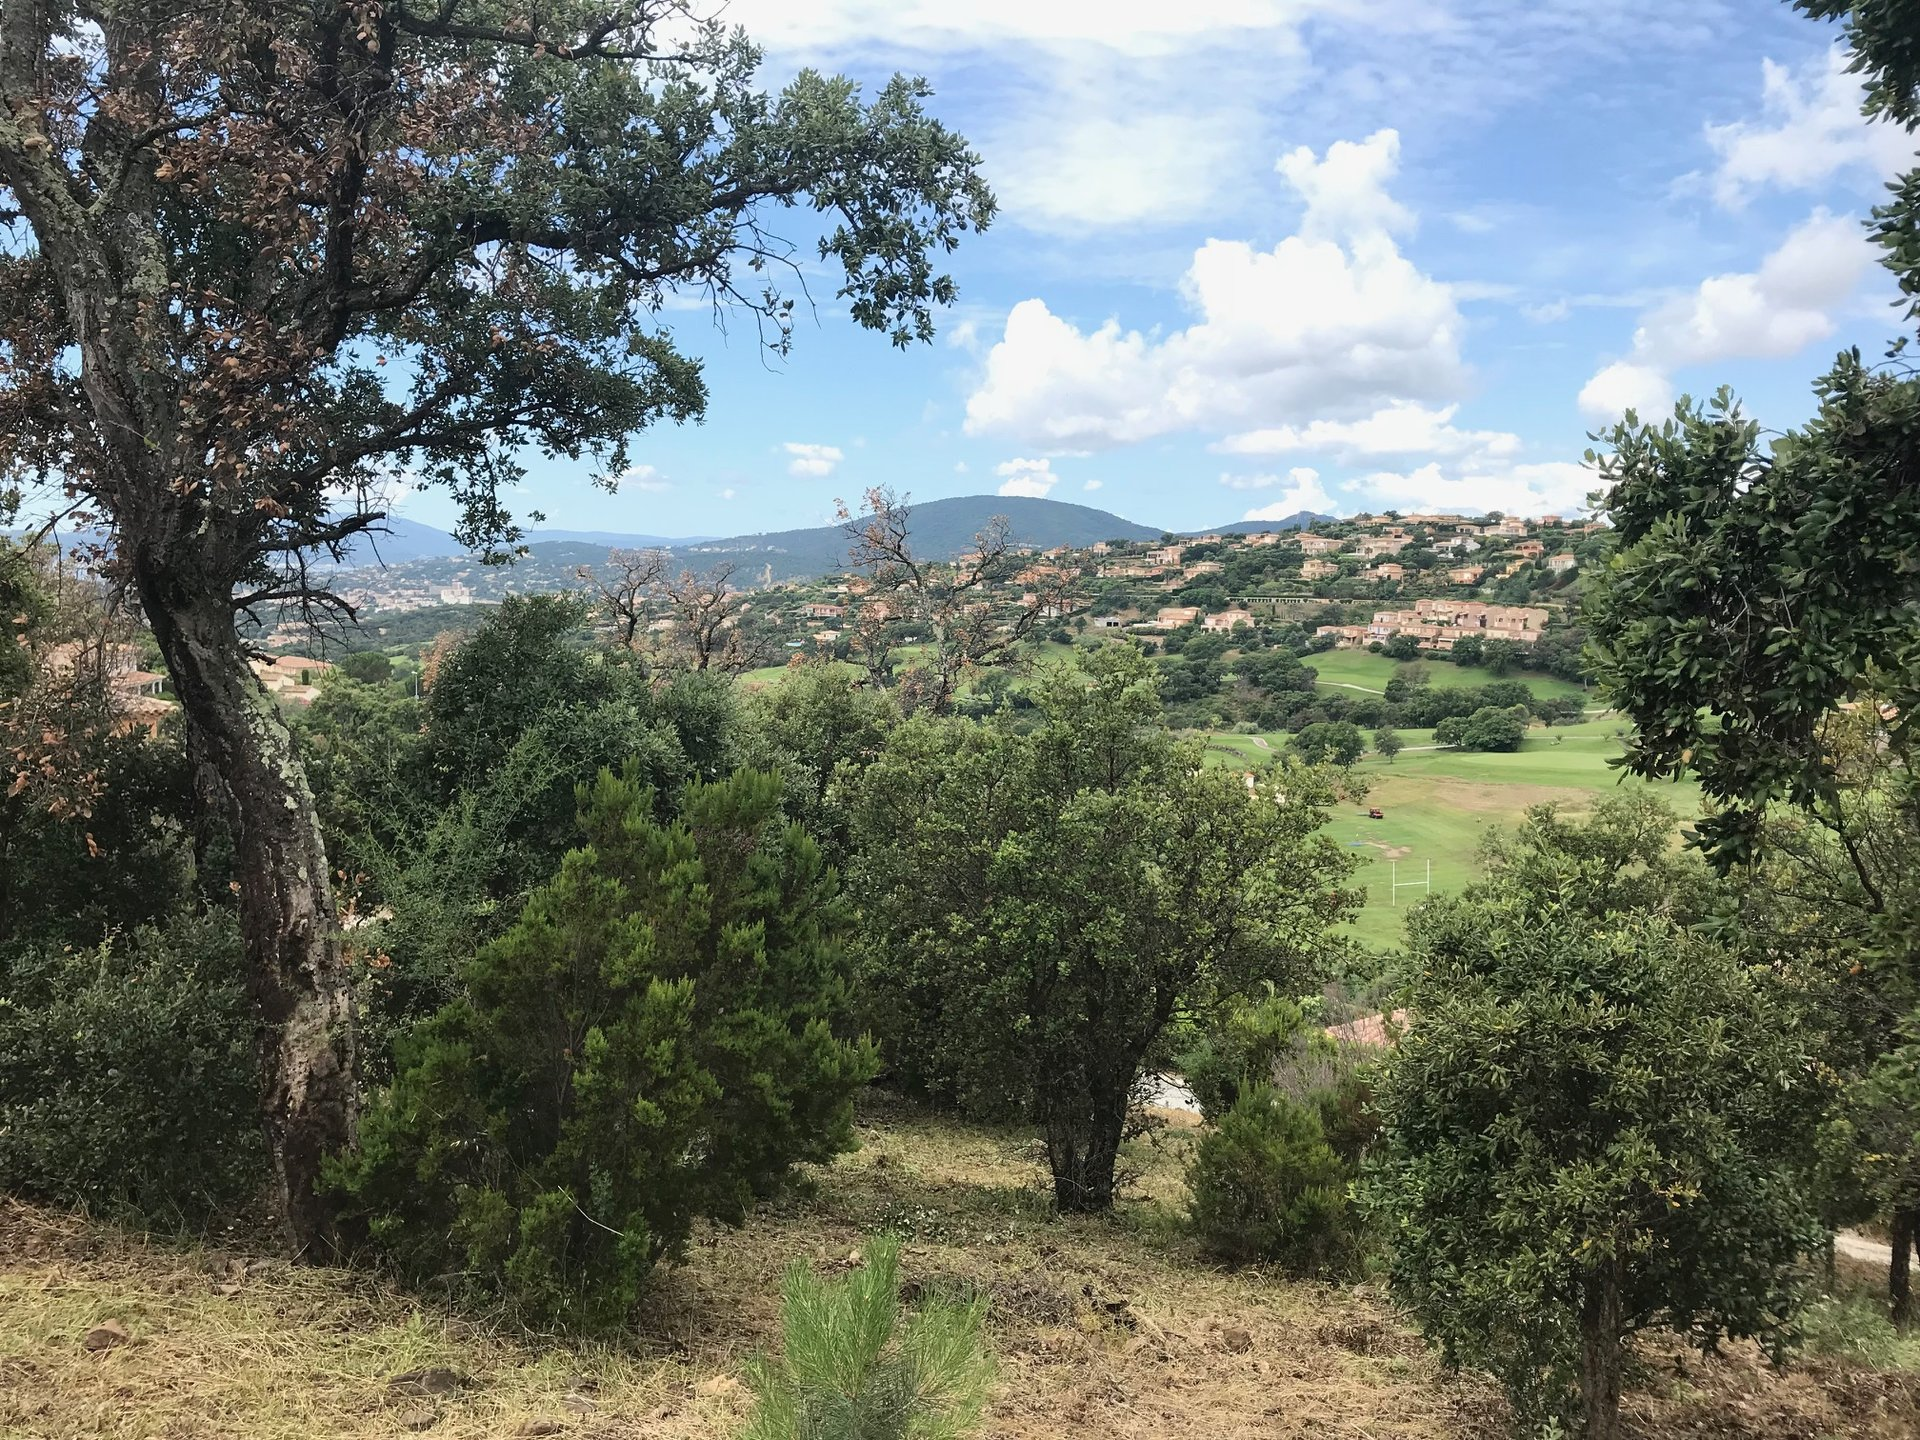 Land for sale in Sainte Maxime facing the Golf